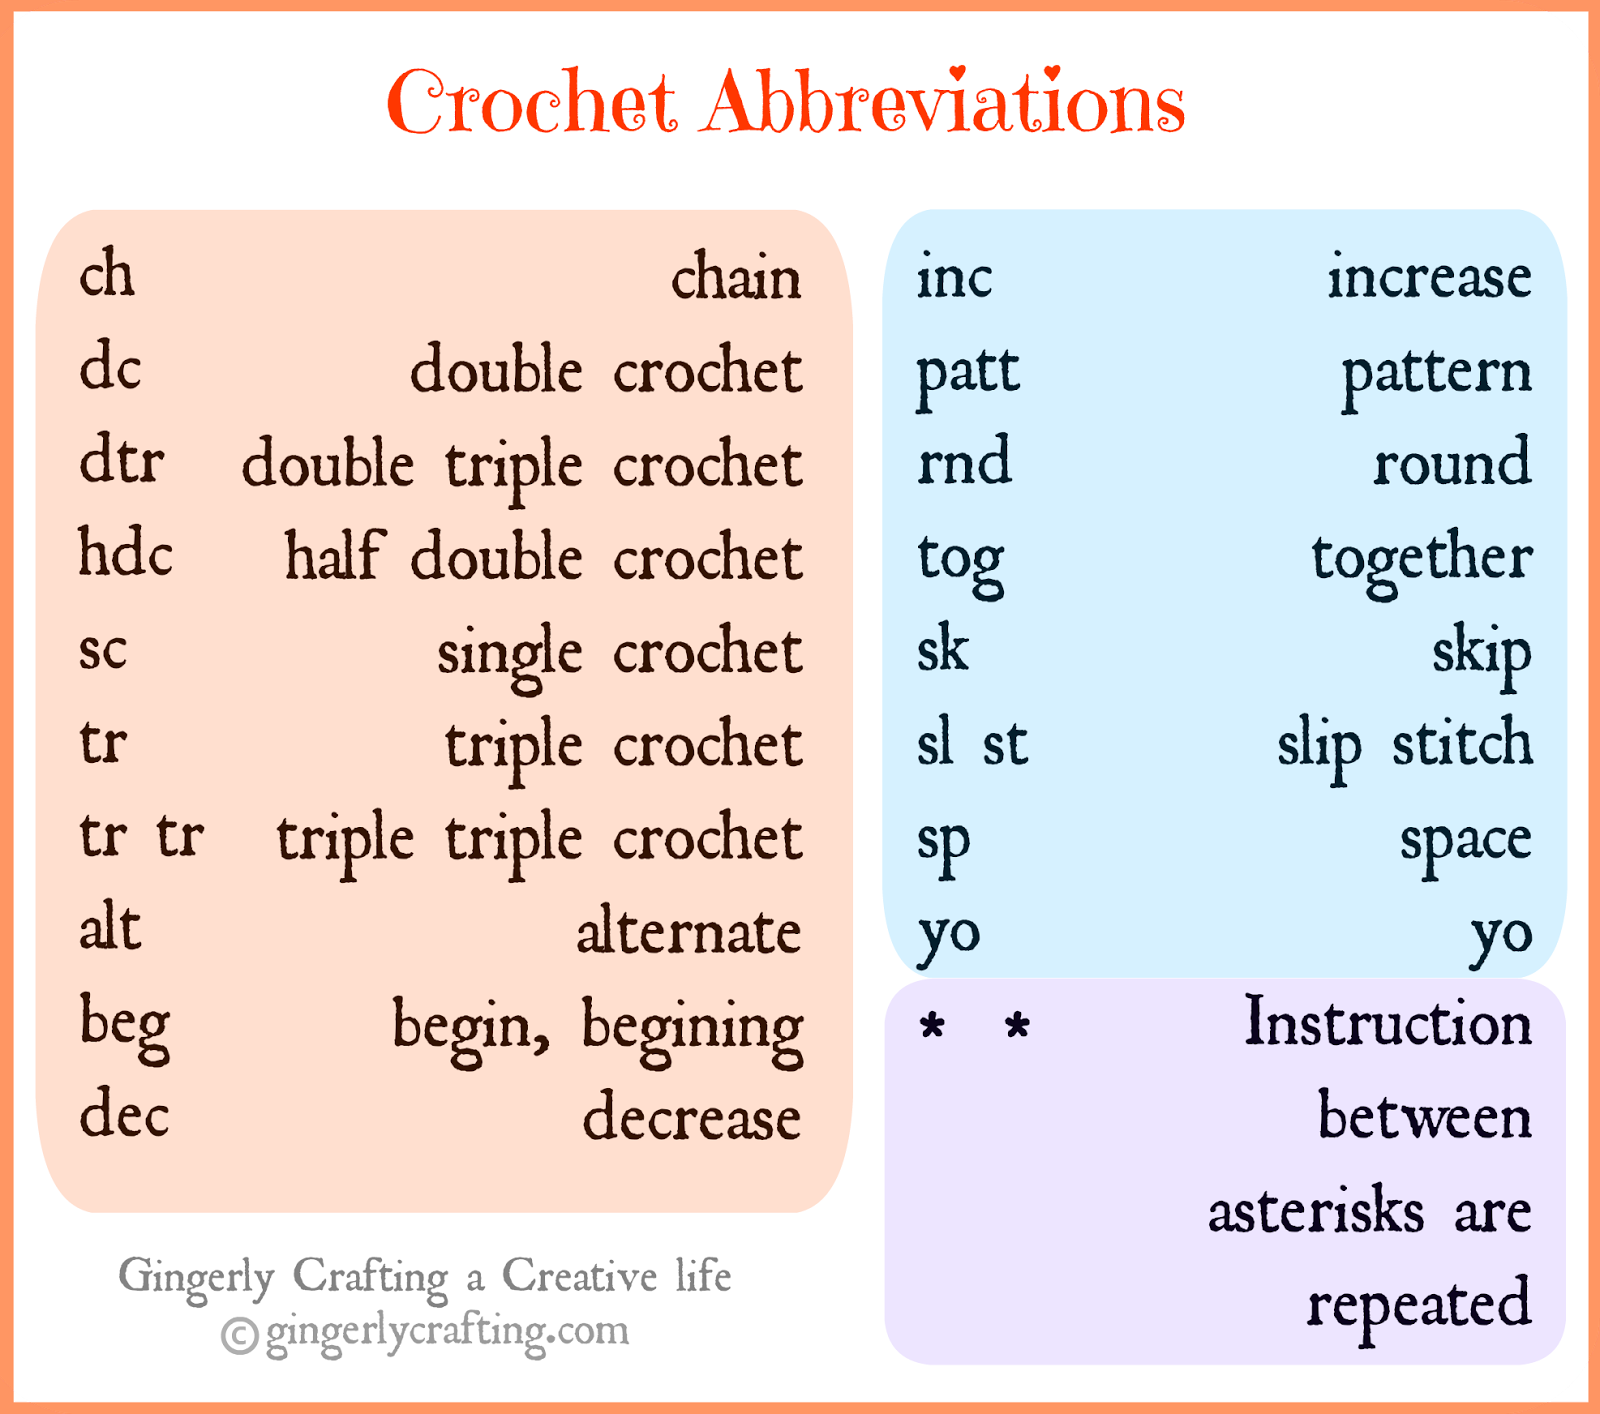 Crocheting Abbreviations : Printable Crochet Abbreviations Female Tennis Player Feet Funny Friday ...